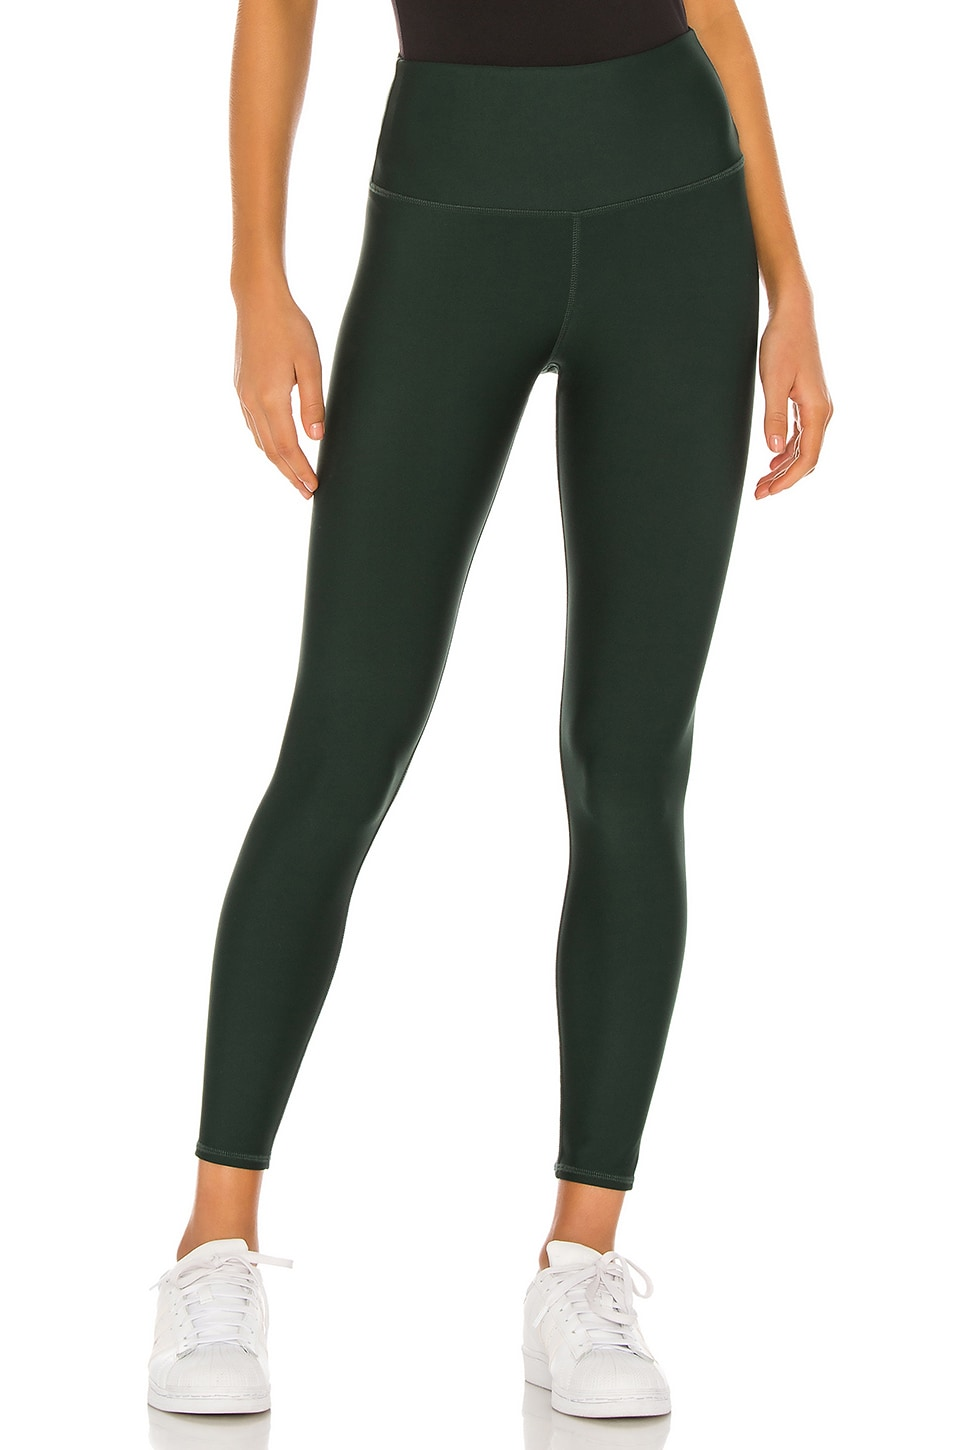 alo 7/8 High Waist Airlift Legging in Forest